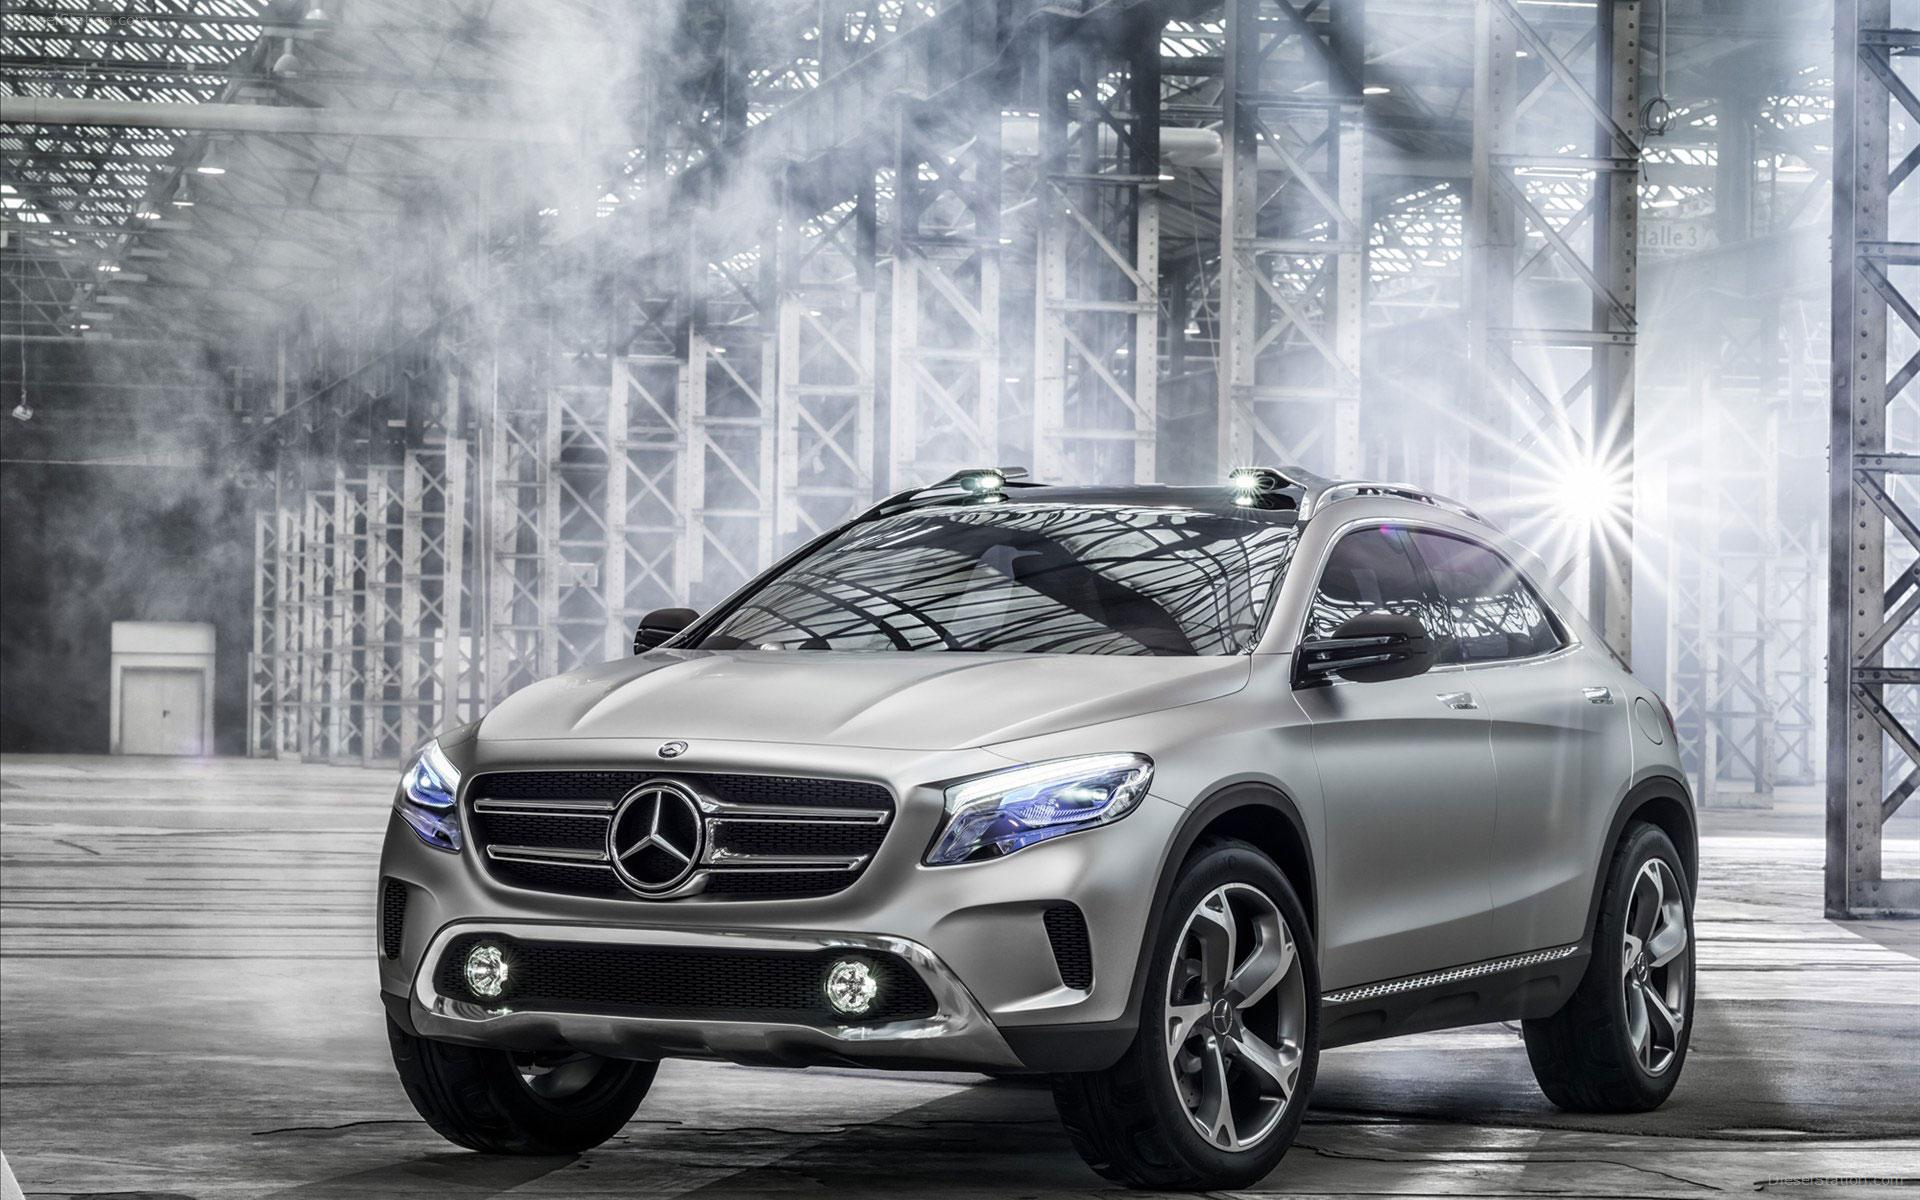 Mercedes-Benz GLA-Class Wallpaper 14 - 1920 X 1200 | stmed.net